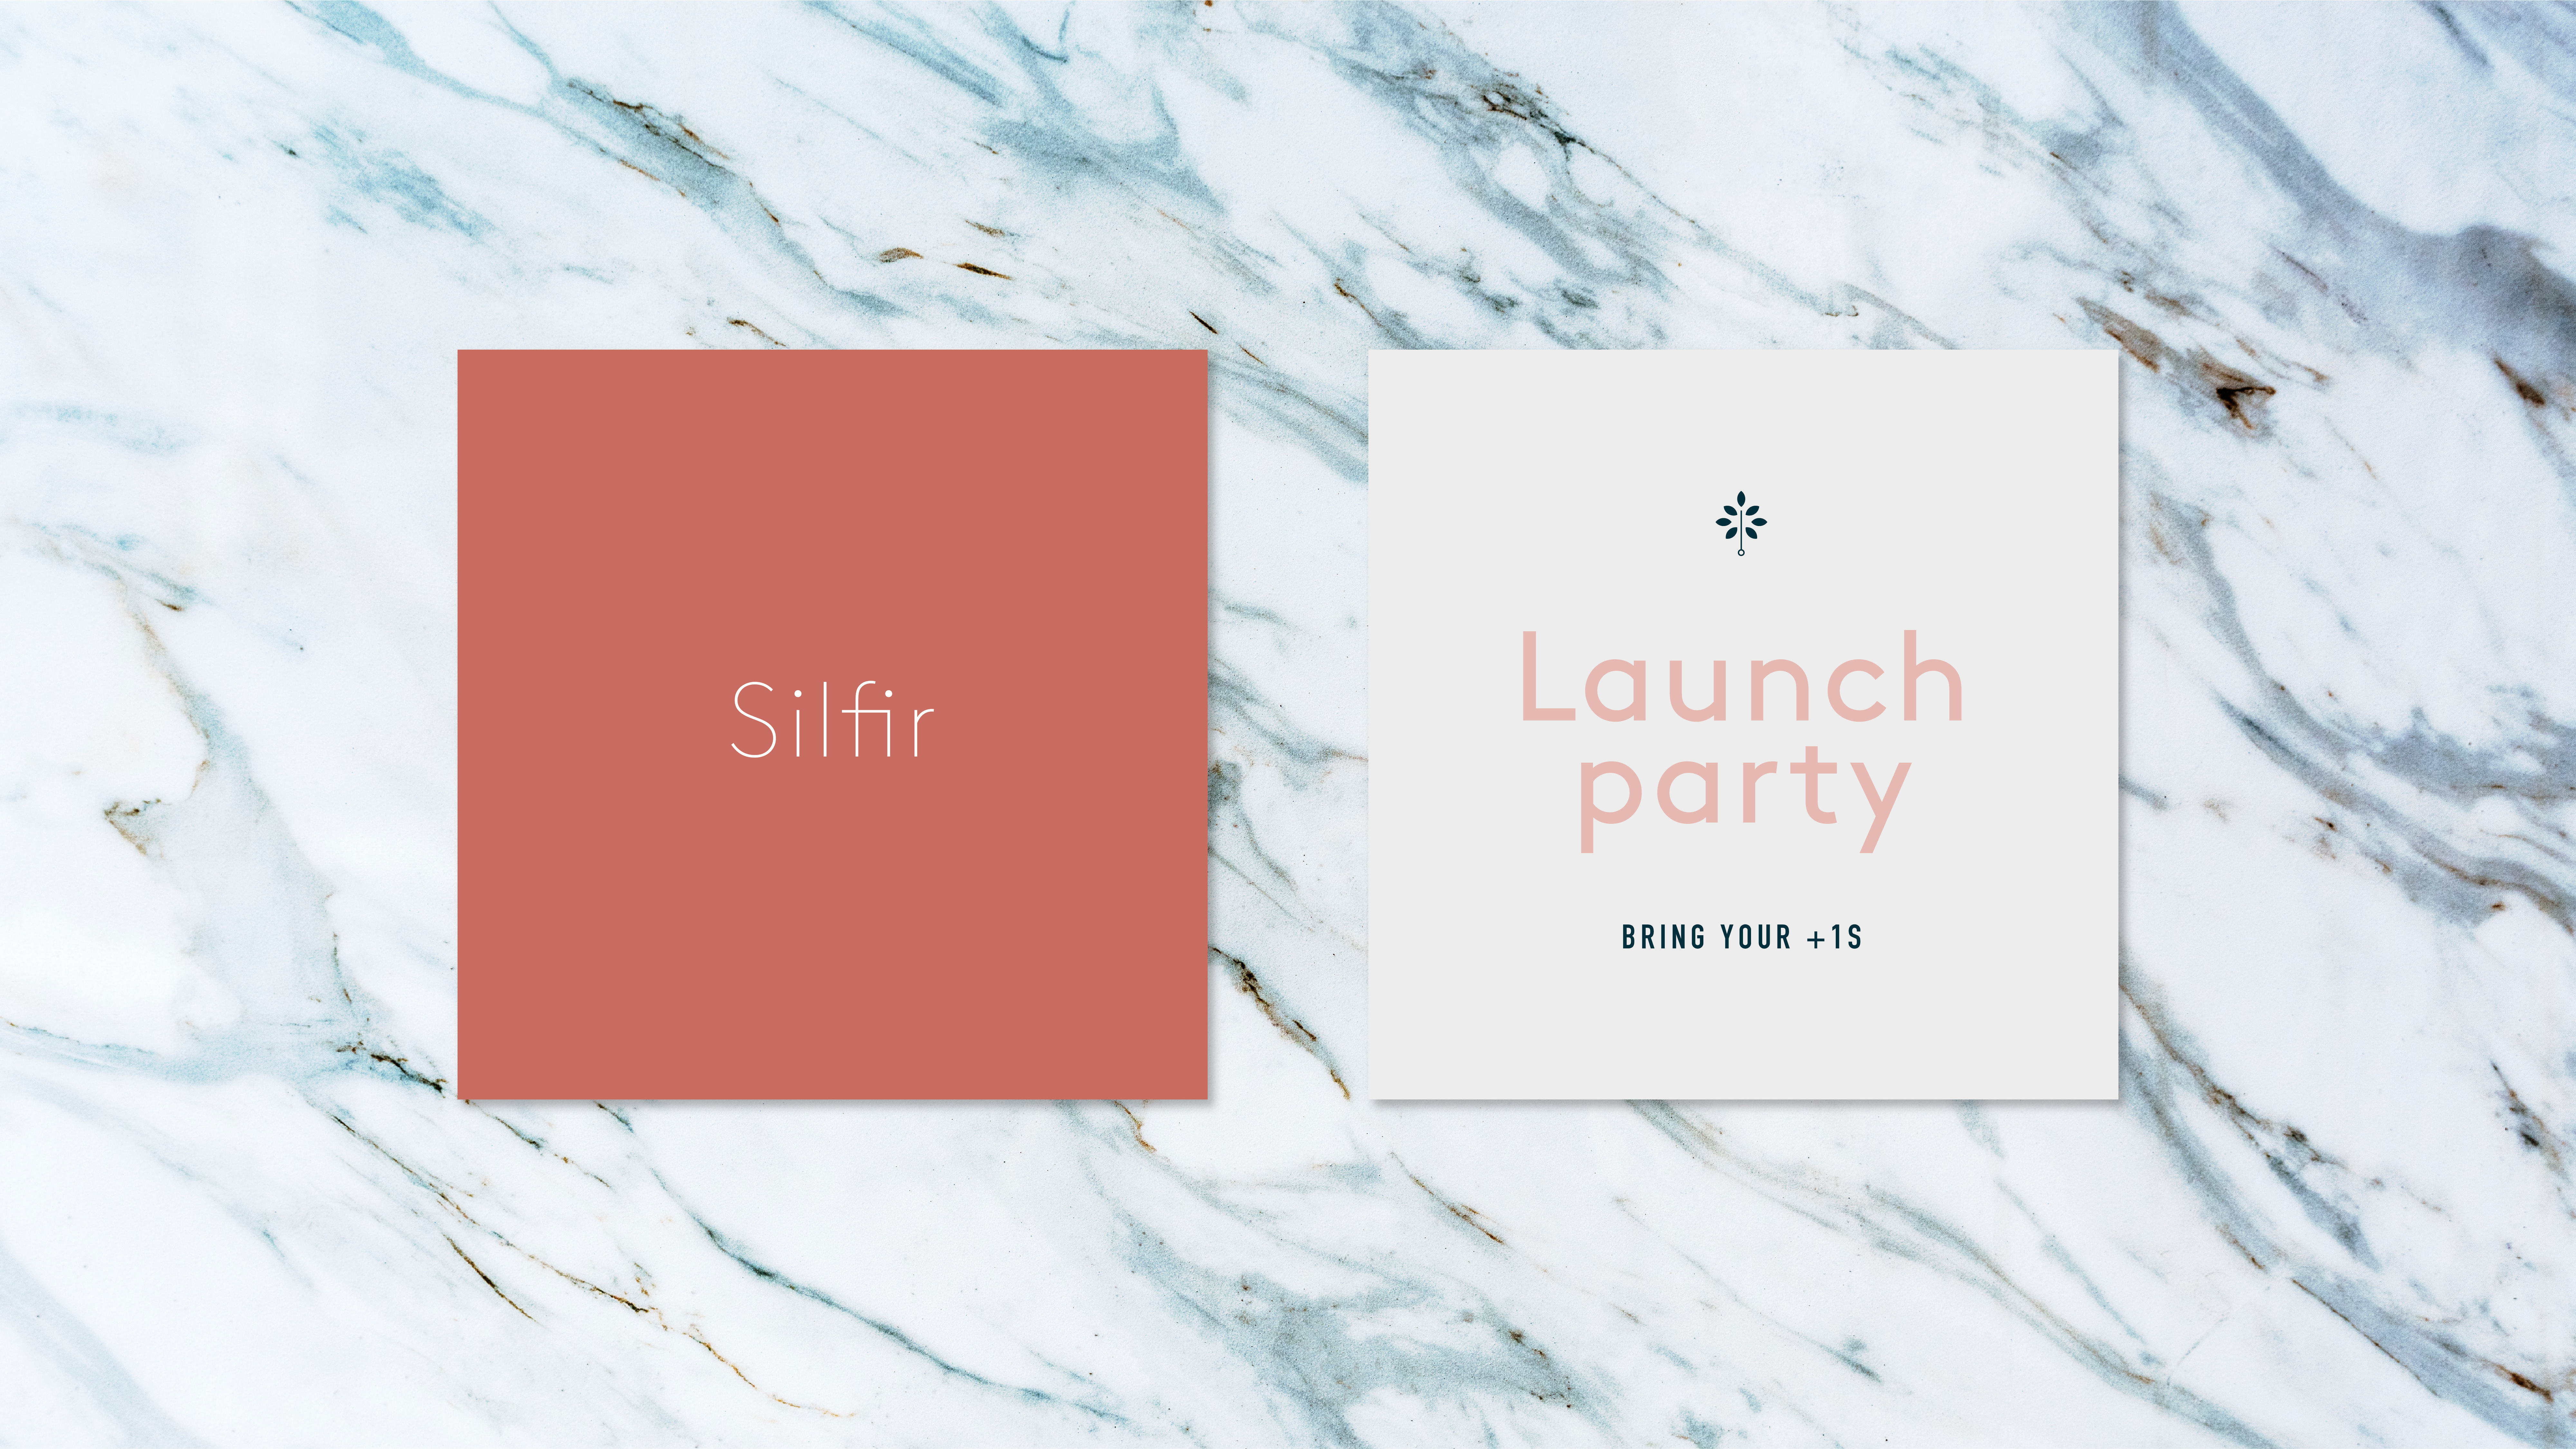 Silfir launch party